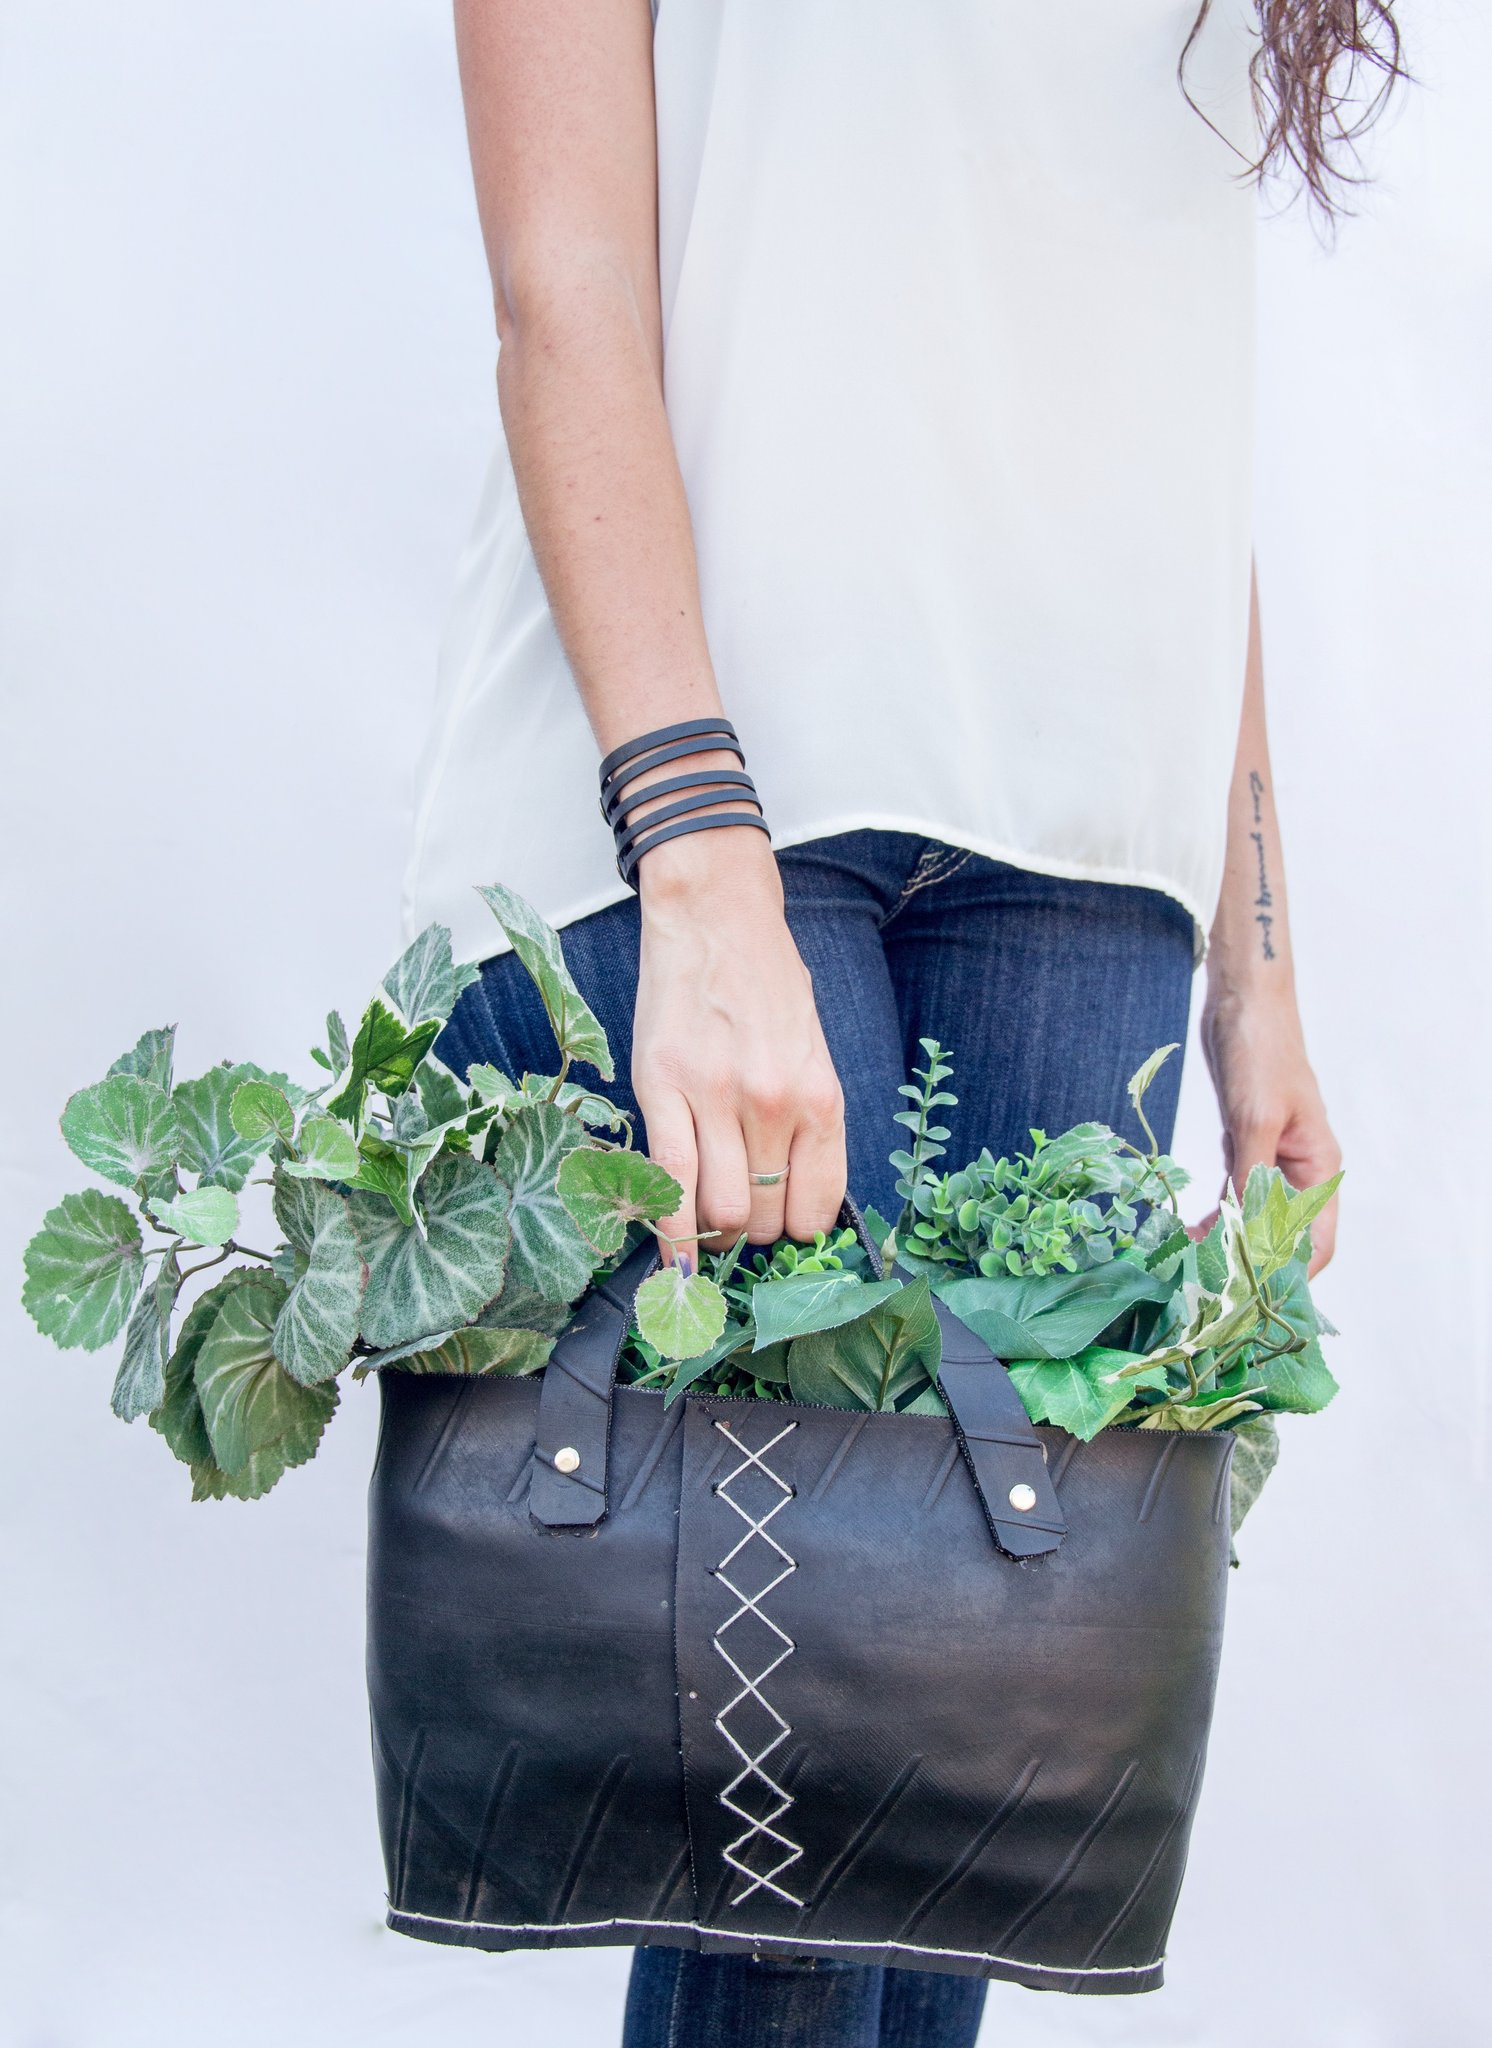 Chic Made Consciously** (Indonesia) - upcycled tires